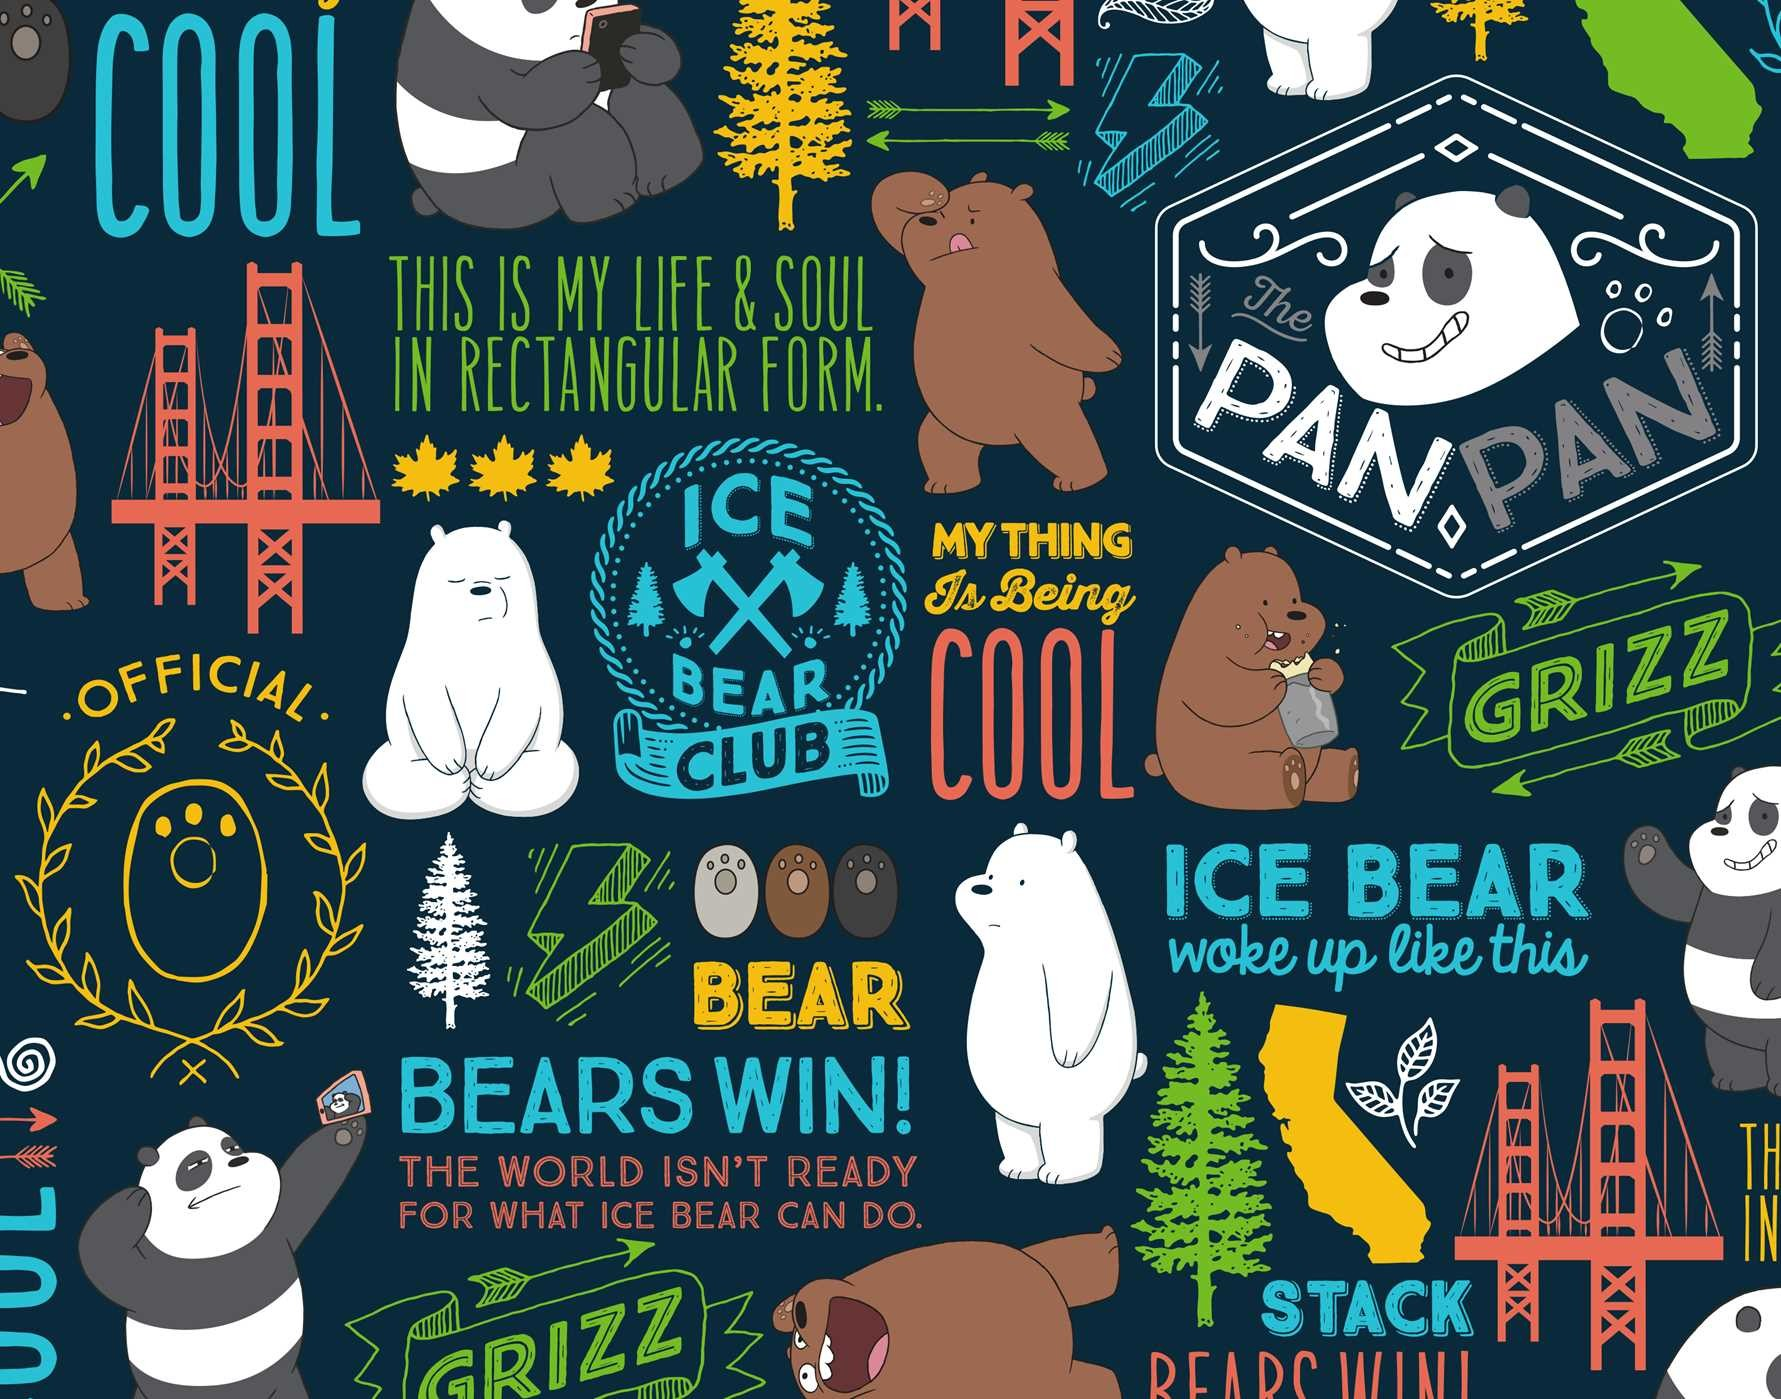 We Bare Bears Hardcover Ruled Journal We Bare Bears Wallpaper Hd Desktop 208293 Hd Wallpaper Backgrounds Download